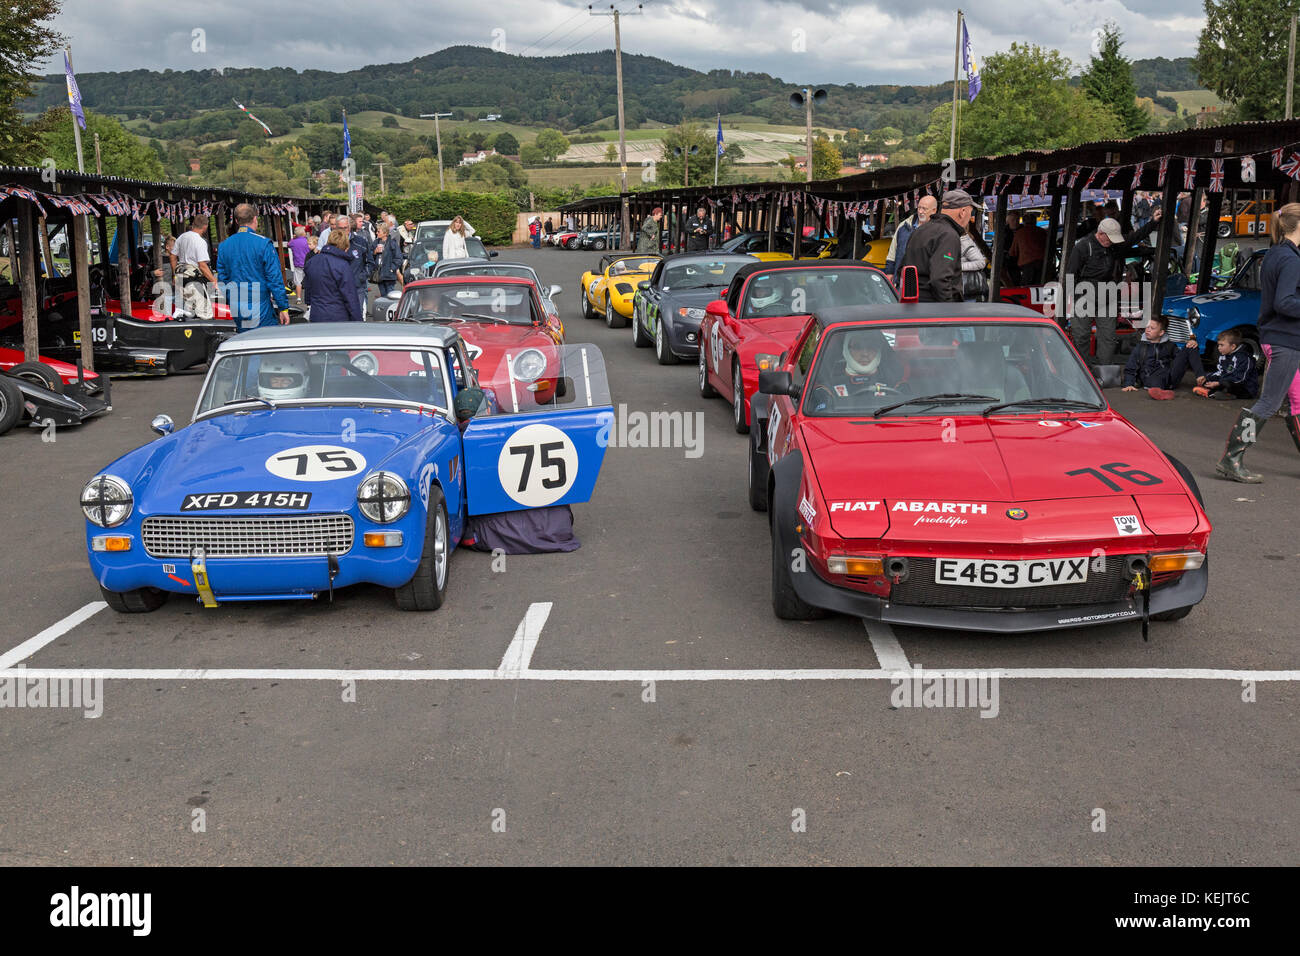 Line up of Sports Cars including a Fiat X1/9 and an MG Midget at the 2017 Autumn Speed Finale at Shelsley Walsh - Stock Image